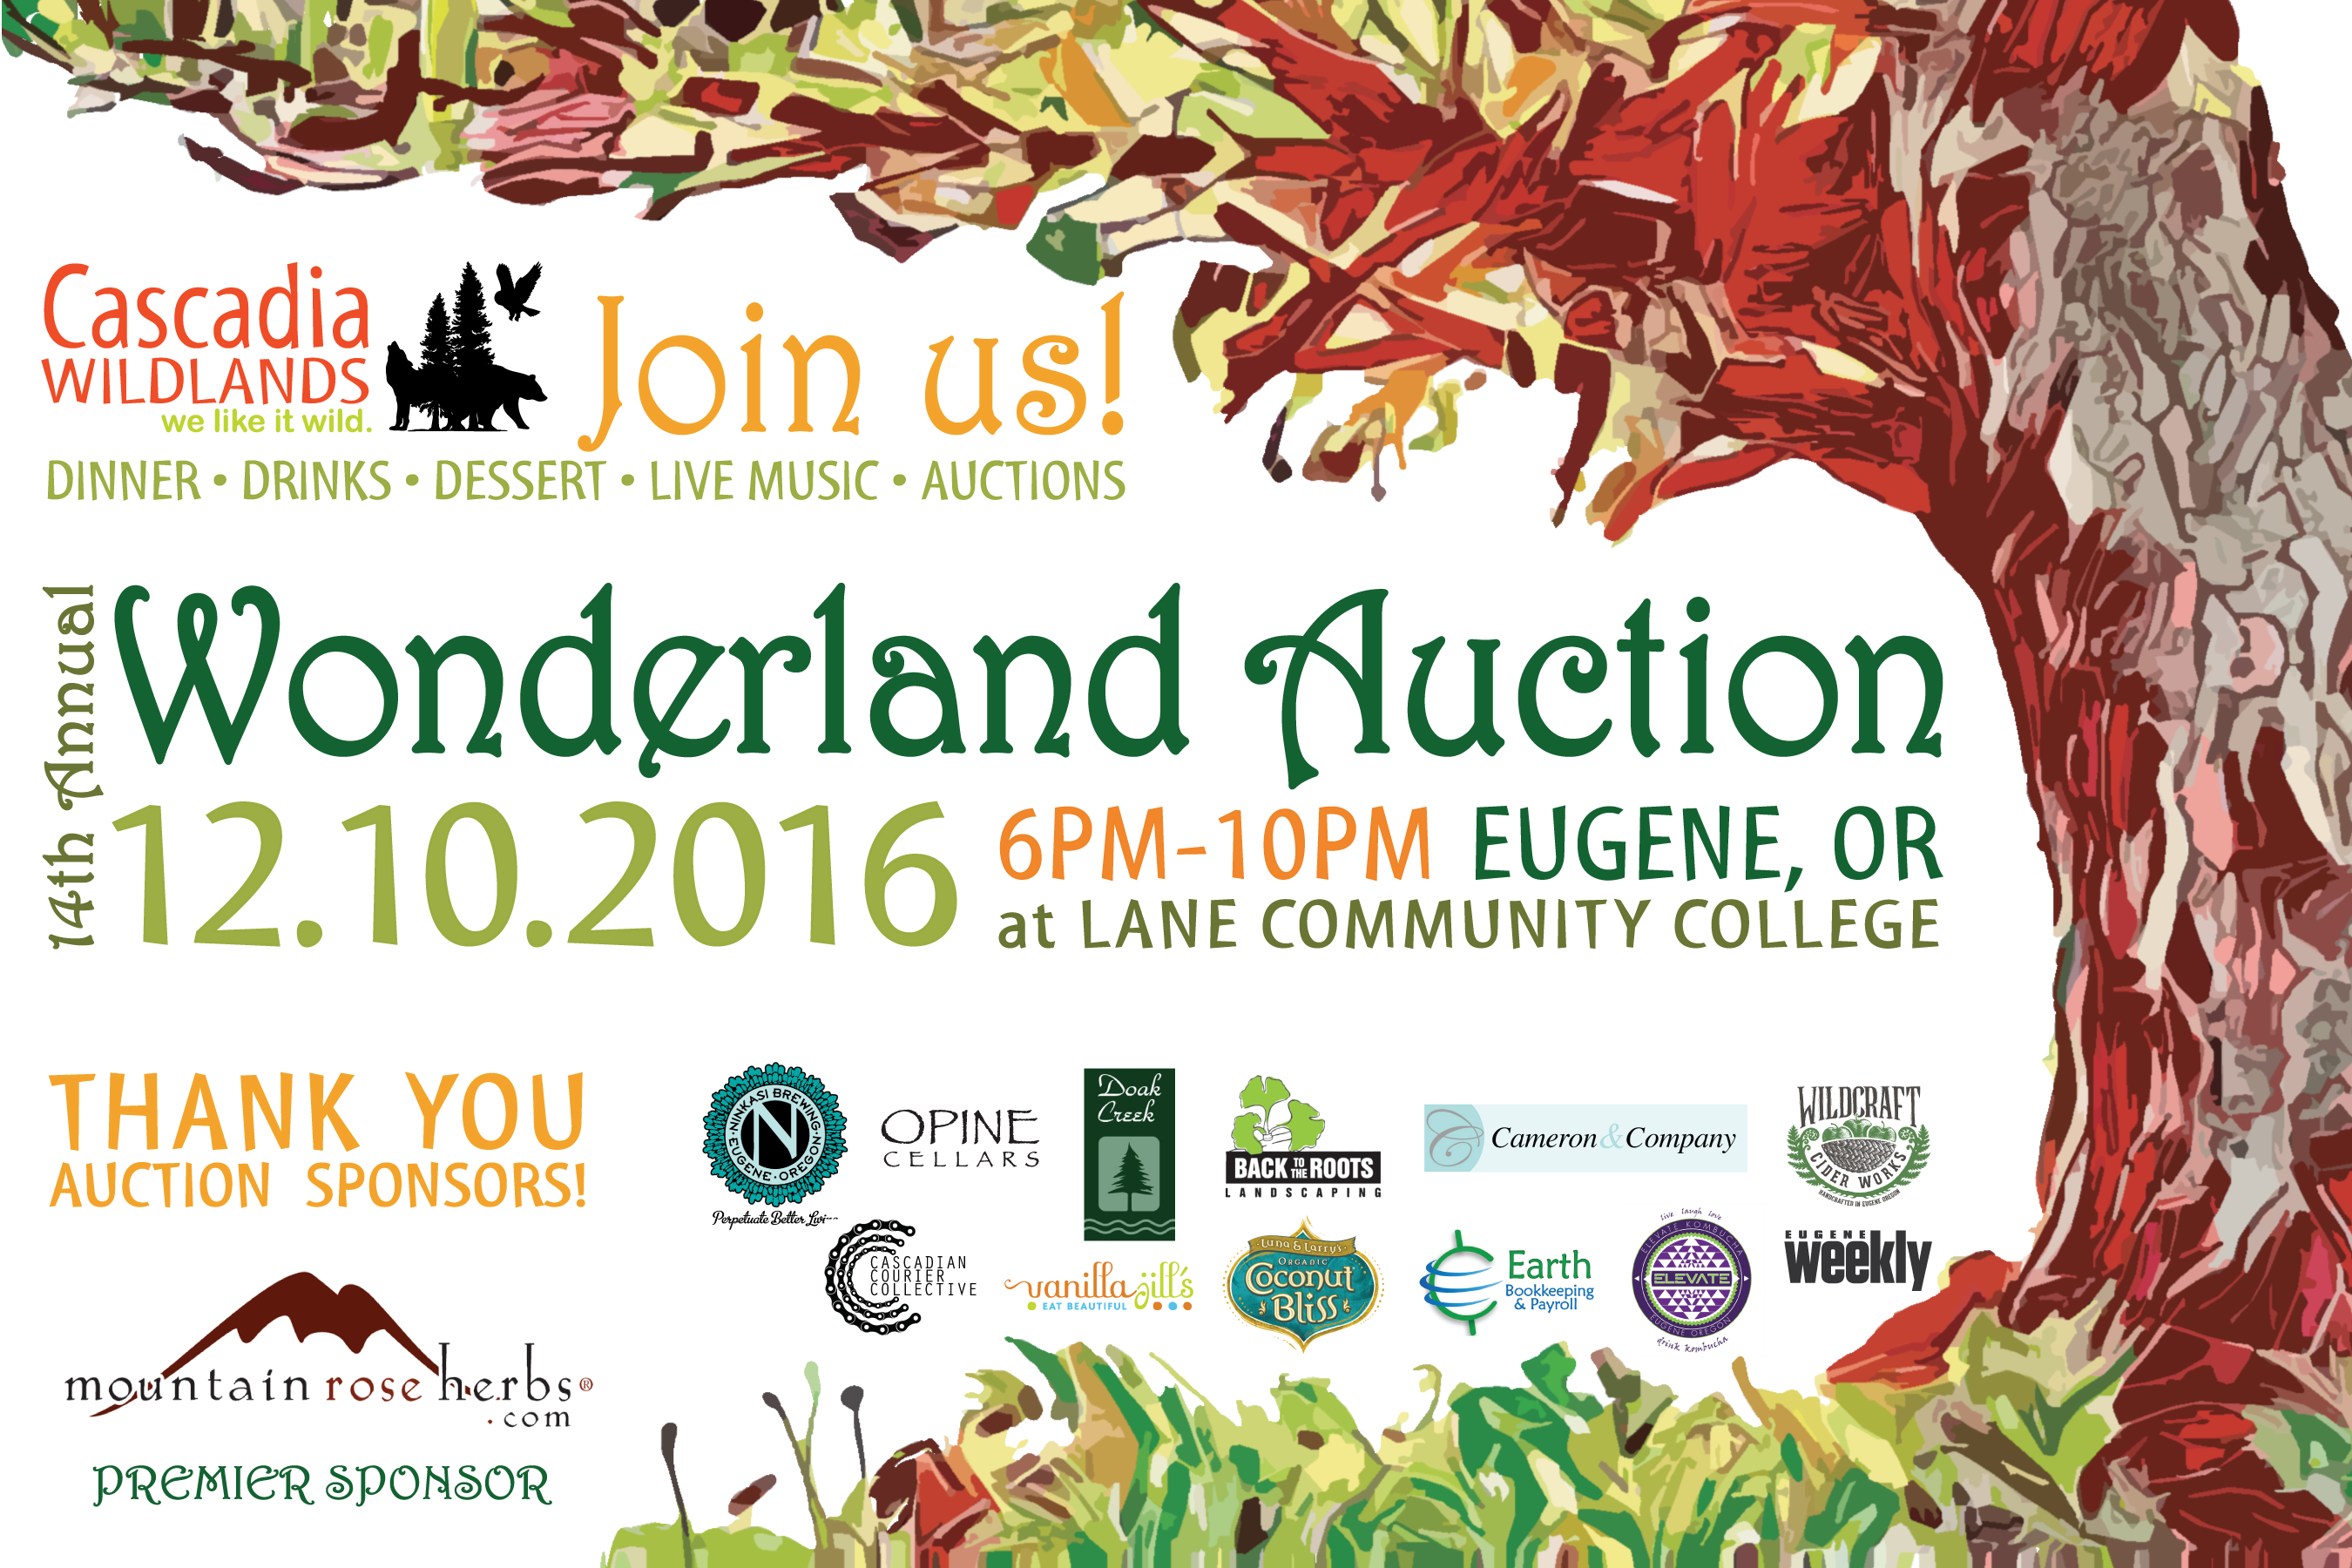 Join us for 14th annual Wonderland Auction - Saturday, December 10, 2016.